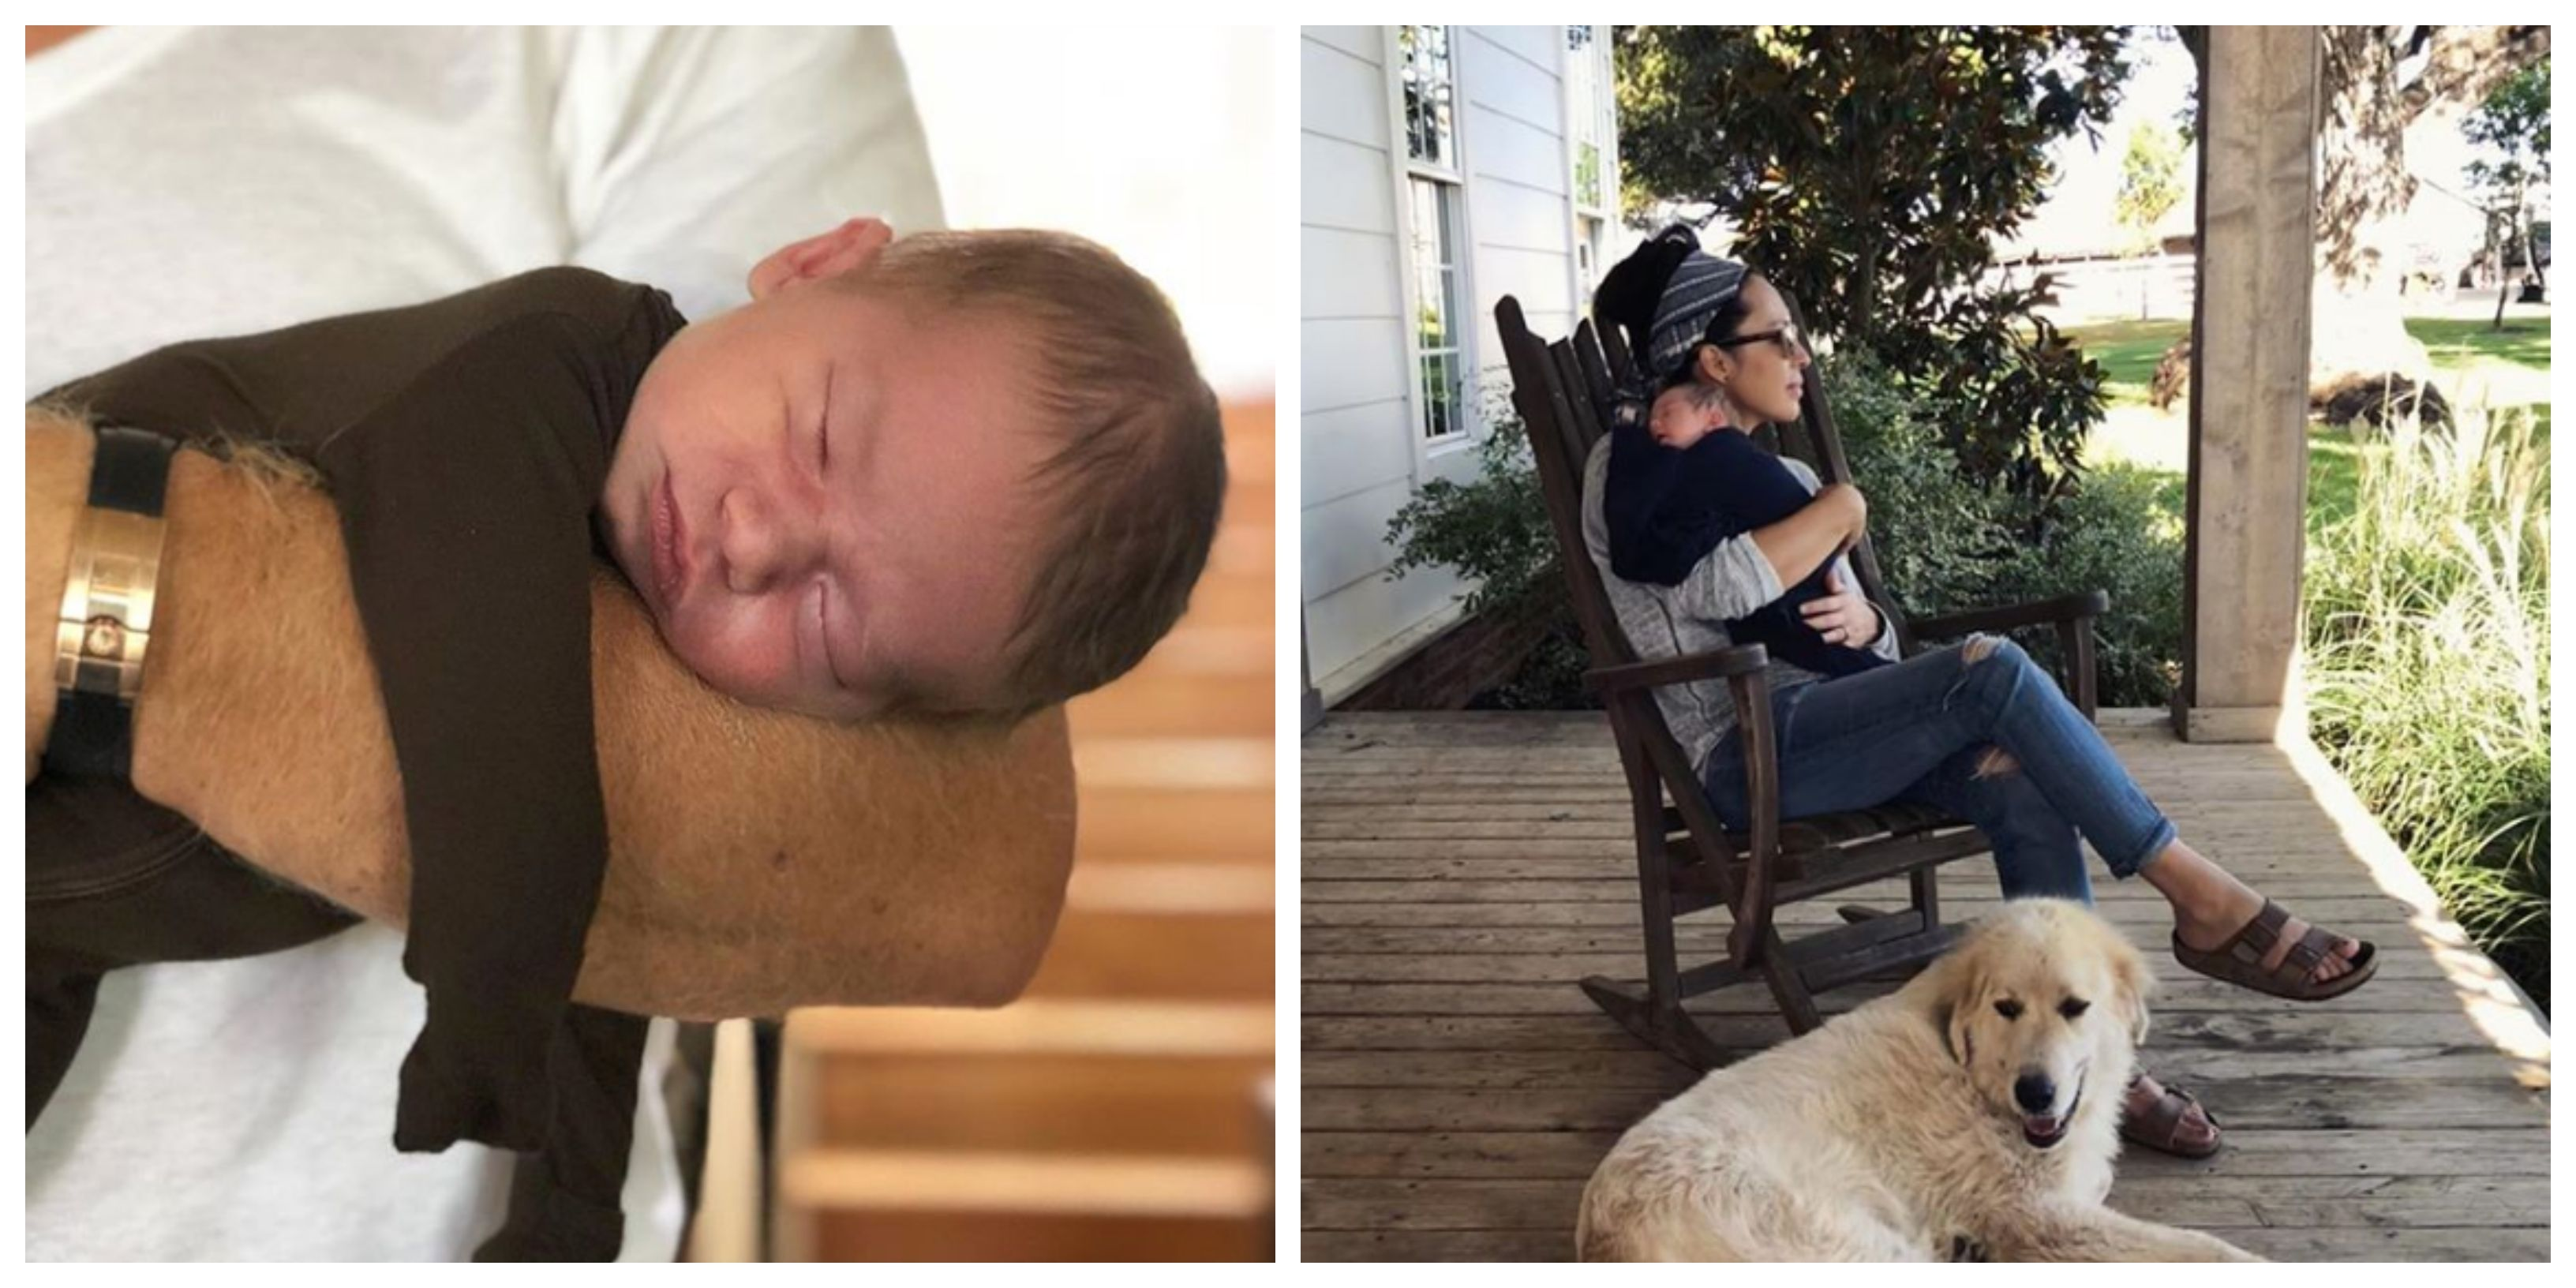 11 adorable pictures of chip and joanna gaines's new baby, crew